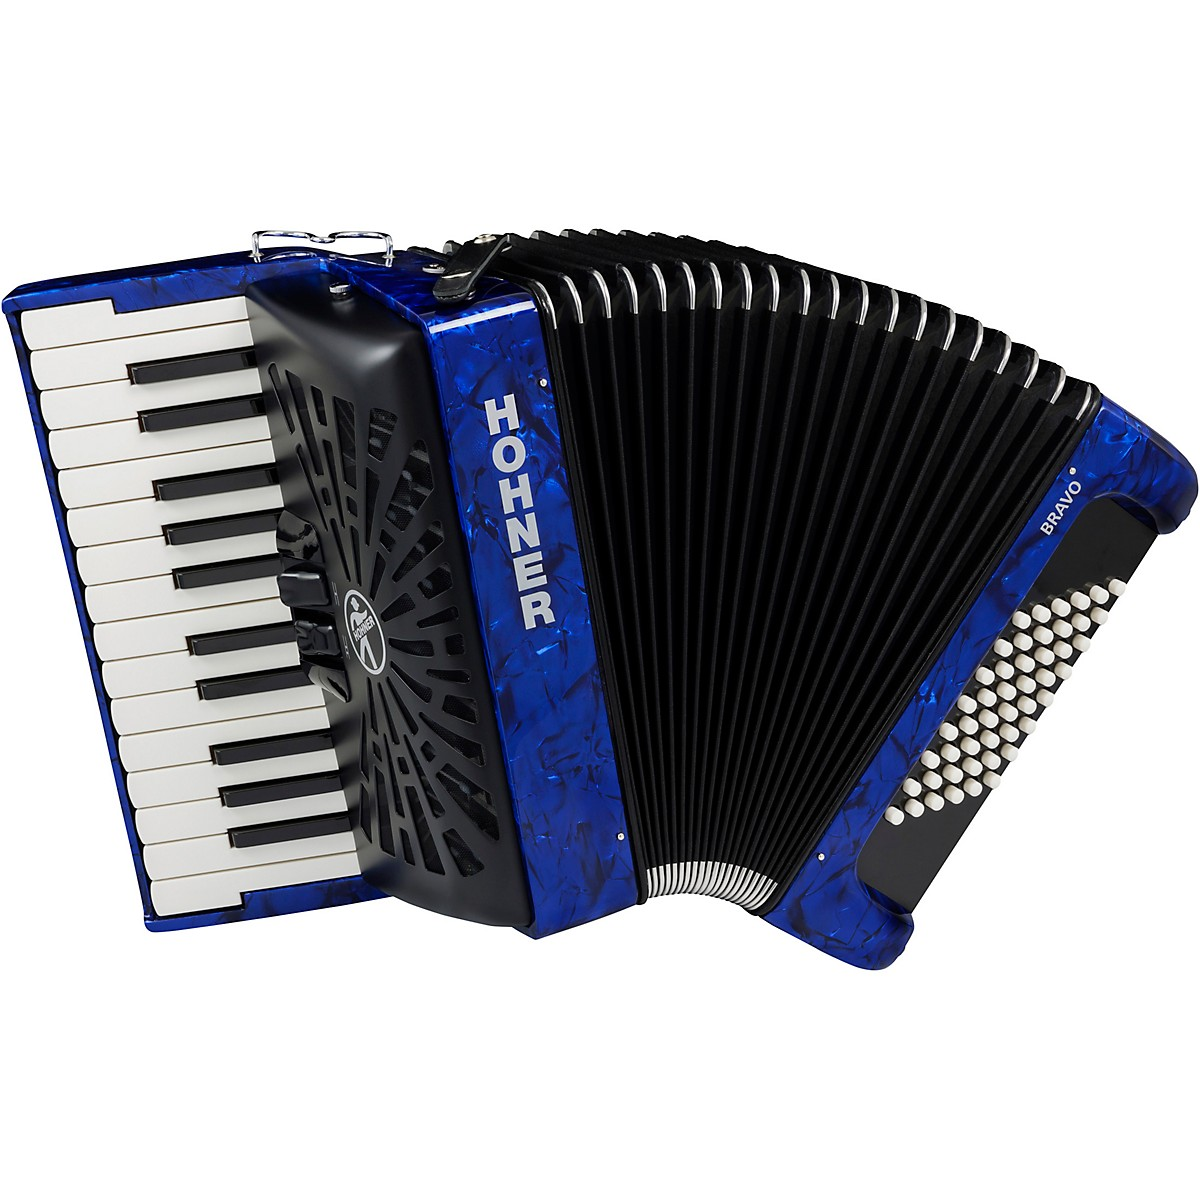 Hohner Bravo II 48 Accordion with Black Bellows